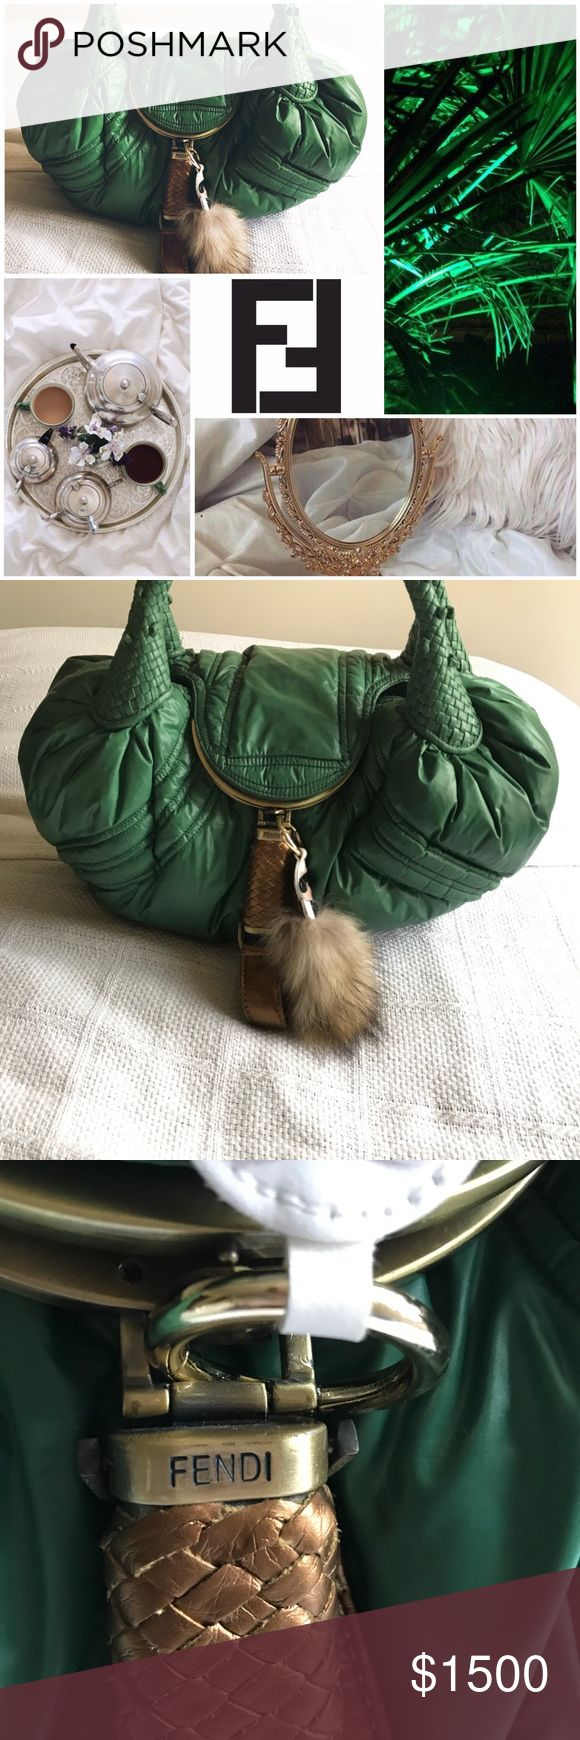 LIMITED EDITION MONCLER FENDI SPY BAG Limited Edition Moncler Fendi Spy Bag. There is a flaw which two burns see pictures. There was only 500 of these bags produced. So I'm looking to sell  it will consider trading for a bag with same value or exclusive only. Fendi Bags Totes